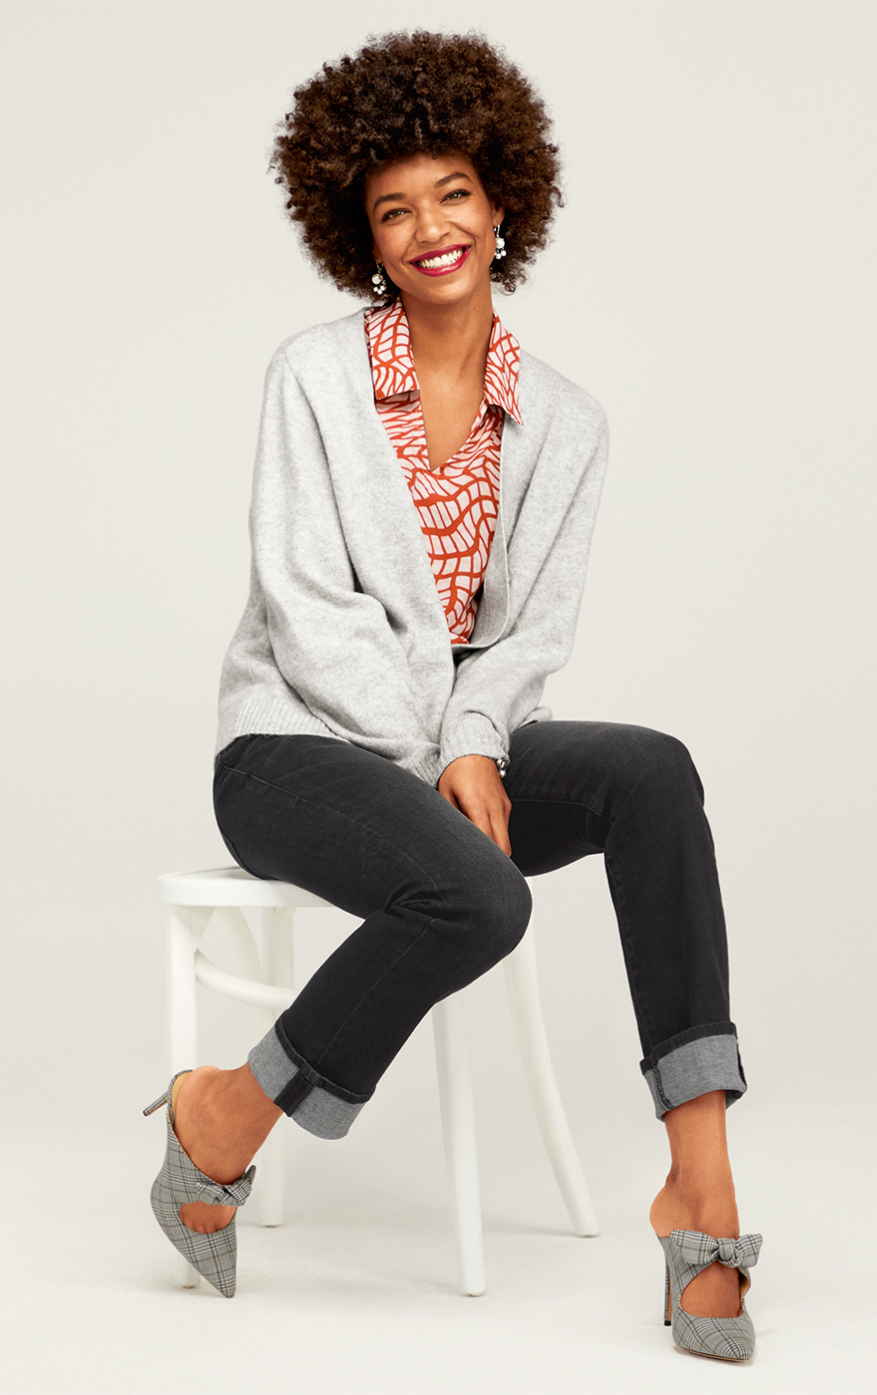 Snug Cardigan in Heather Gray, Button Fly Straight in Carbon, Twirl Top in Russet Twist